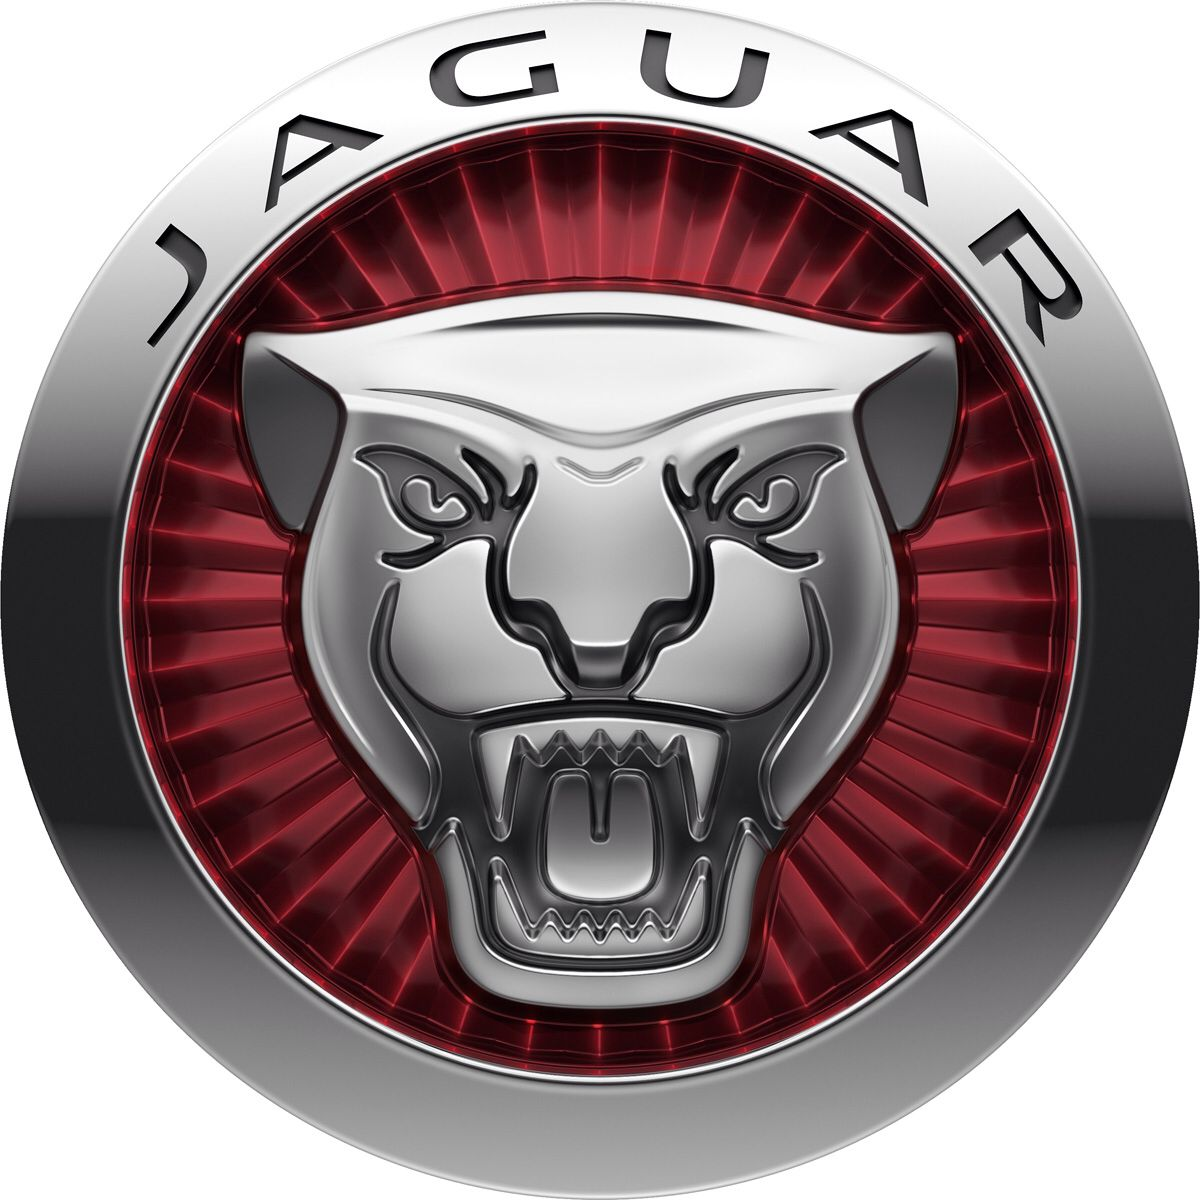 Jaguar badge pinought to you by houseofinsurance for brought to you by houseofinsurance for carinsurance eugeneoregon car logos pinterest cars jaguar xf and car logos biocorpaavc Gallery